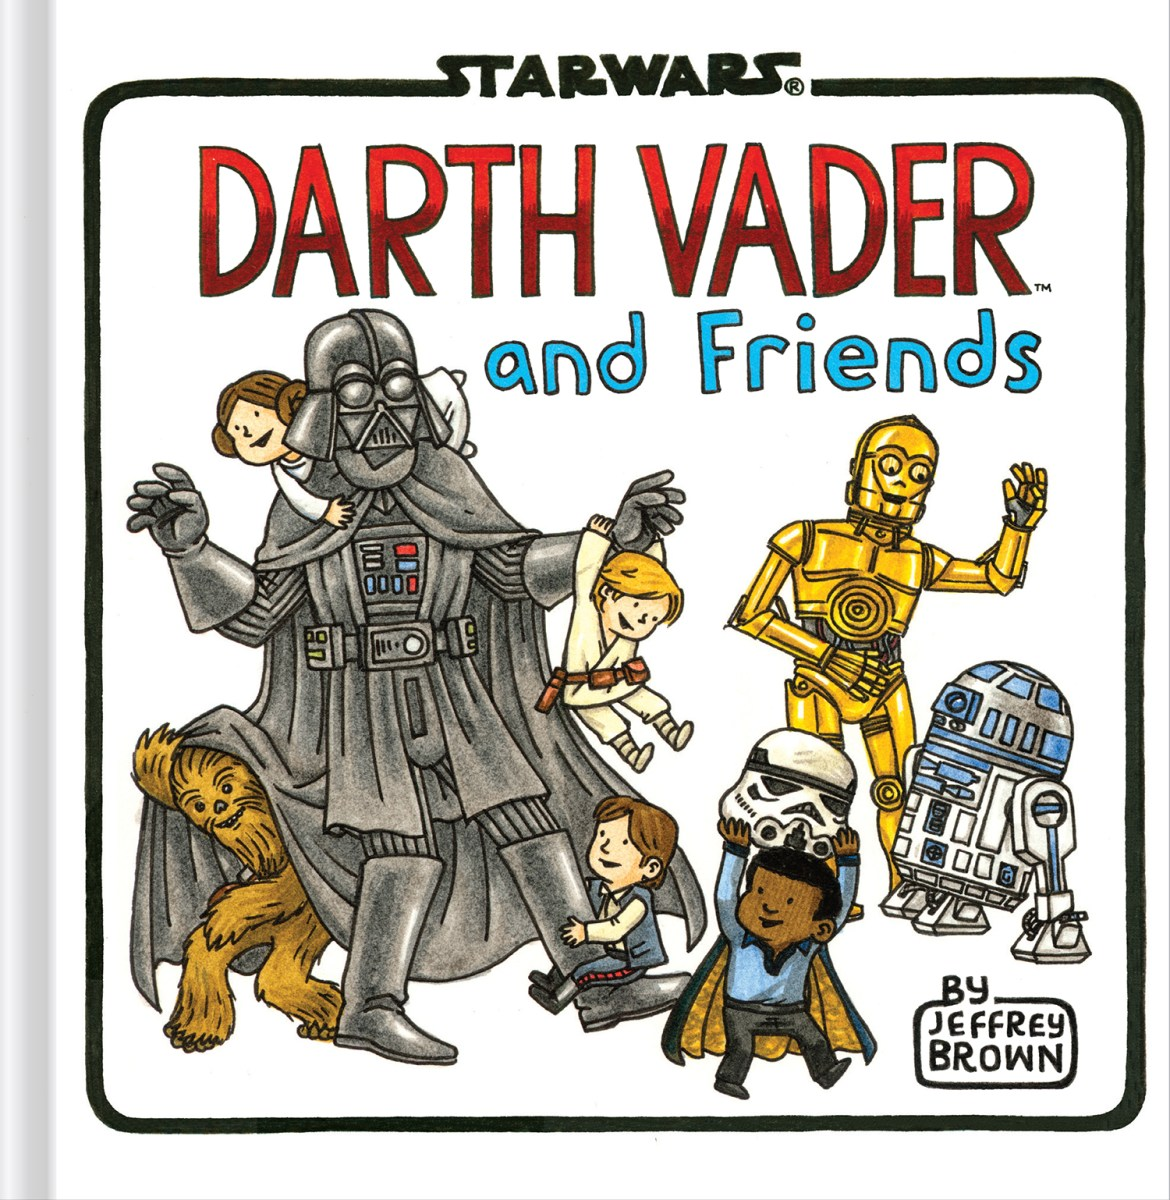 Darth Vader and Friends by Jeffrey Brown - picture book review